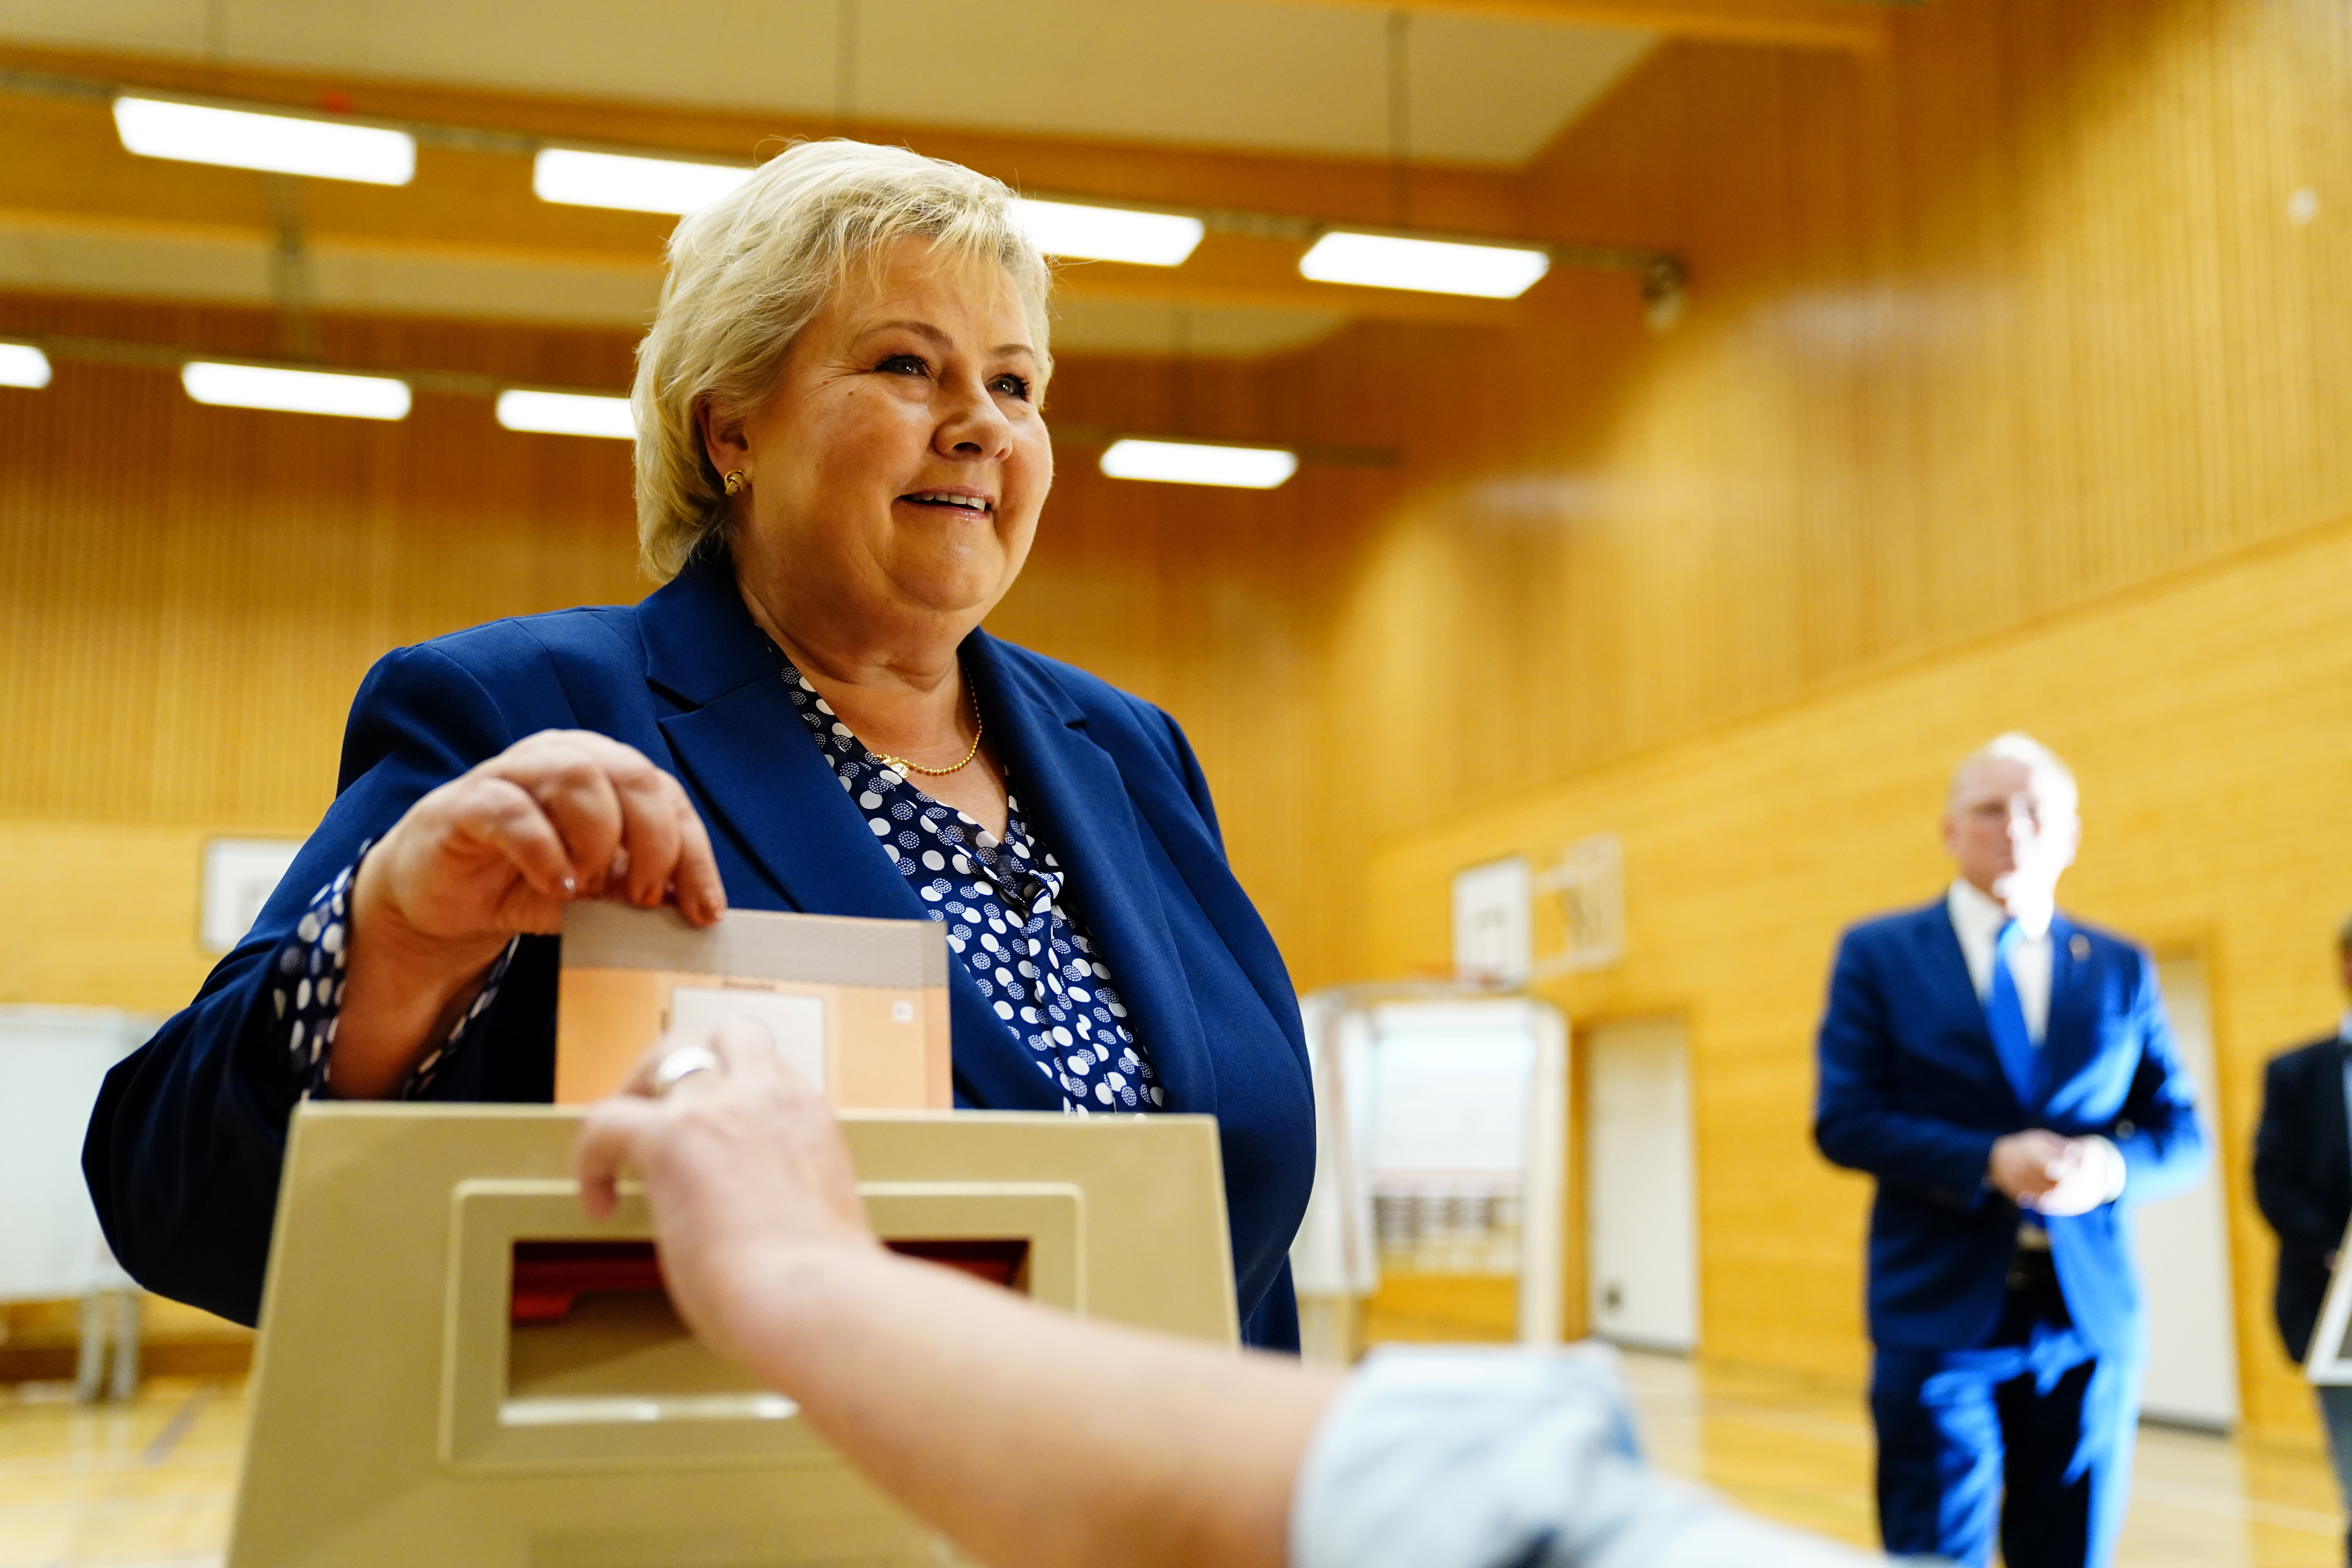 Norwegian Prime Minister Erna Solberg, leader of the Conservative Party, casts her vote in the 2021 parliamentary election at Skjold School in her home town, in Bergen, Norway September 13, 2021. NTB/Hakon Mosvold Larsen via REUTERS